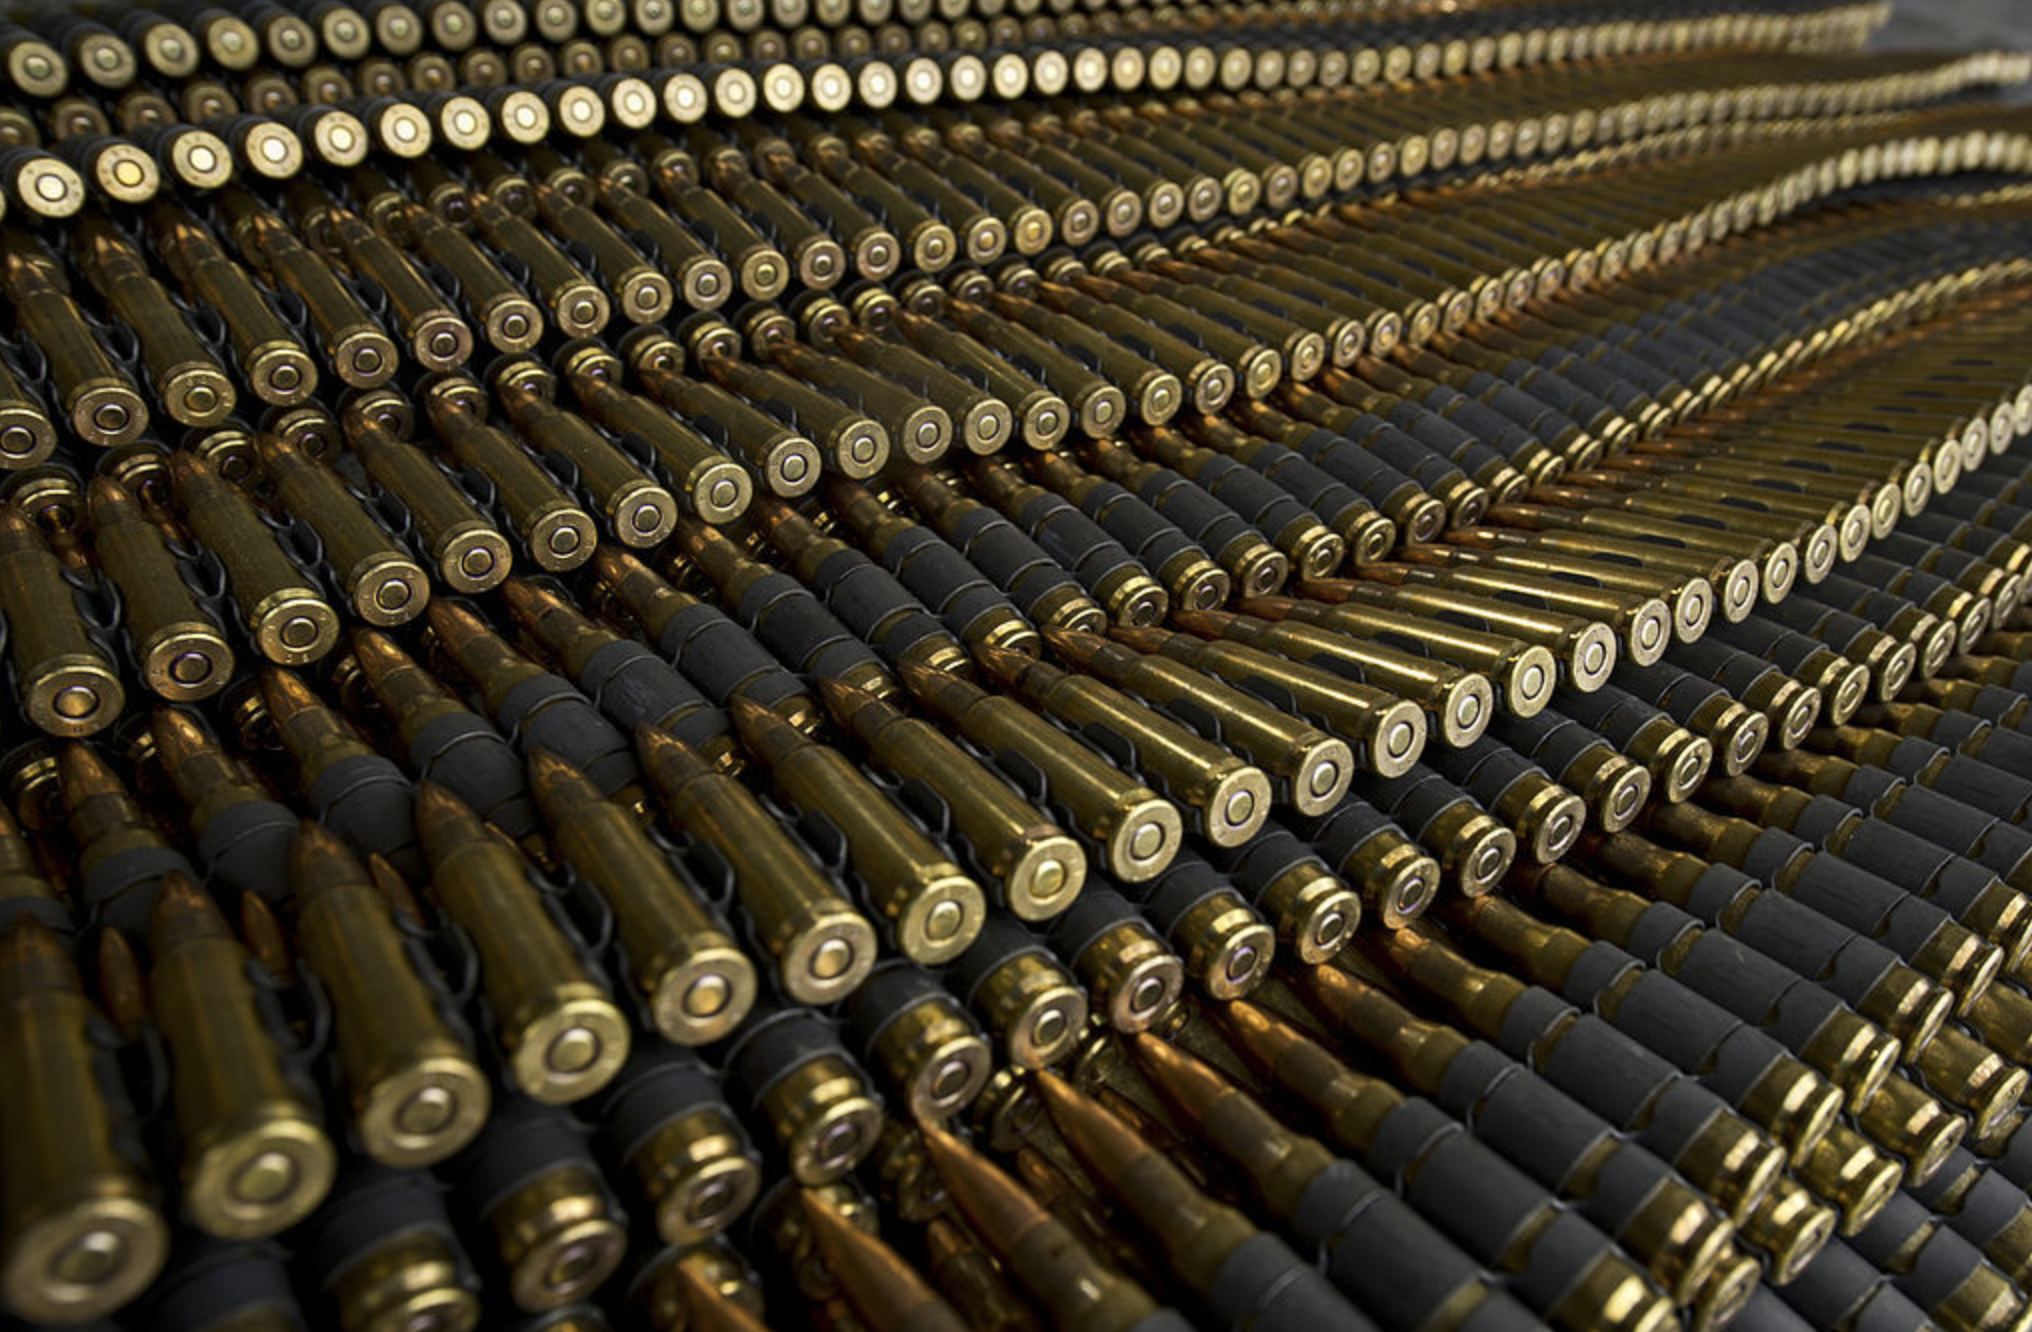 Shipment of millions of rounds of ammunition escorted by a PRI-linked private security company highjacked in Guanajuato